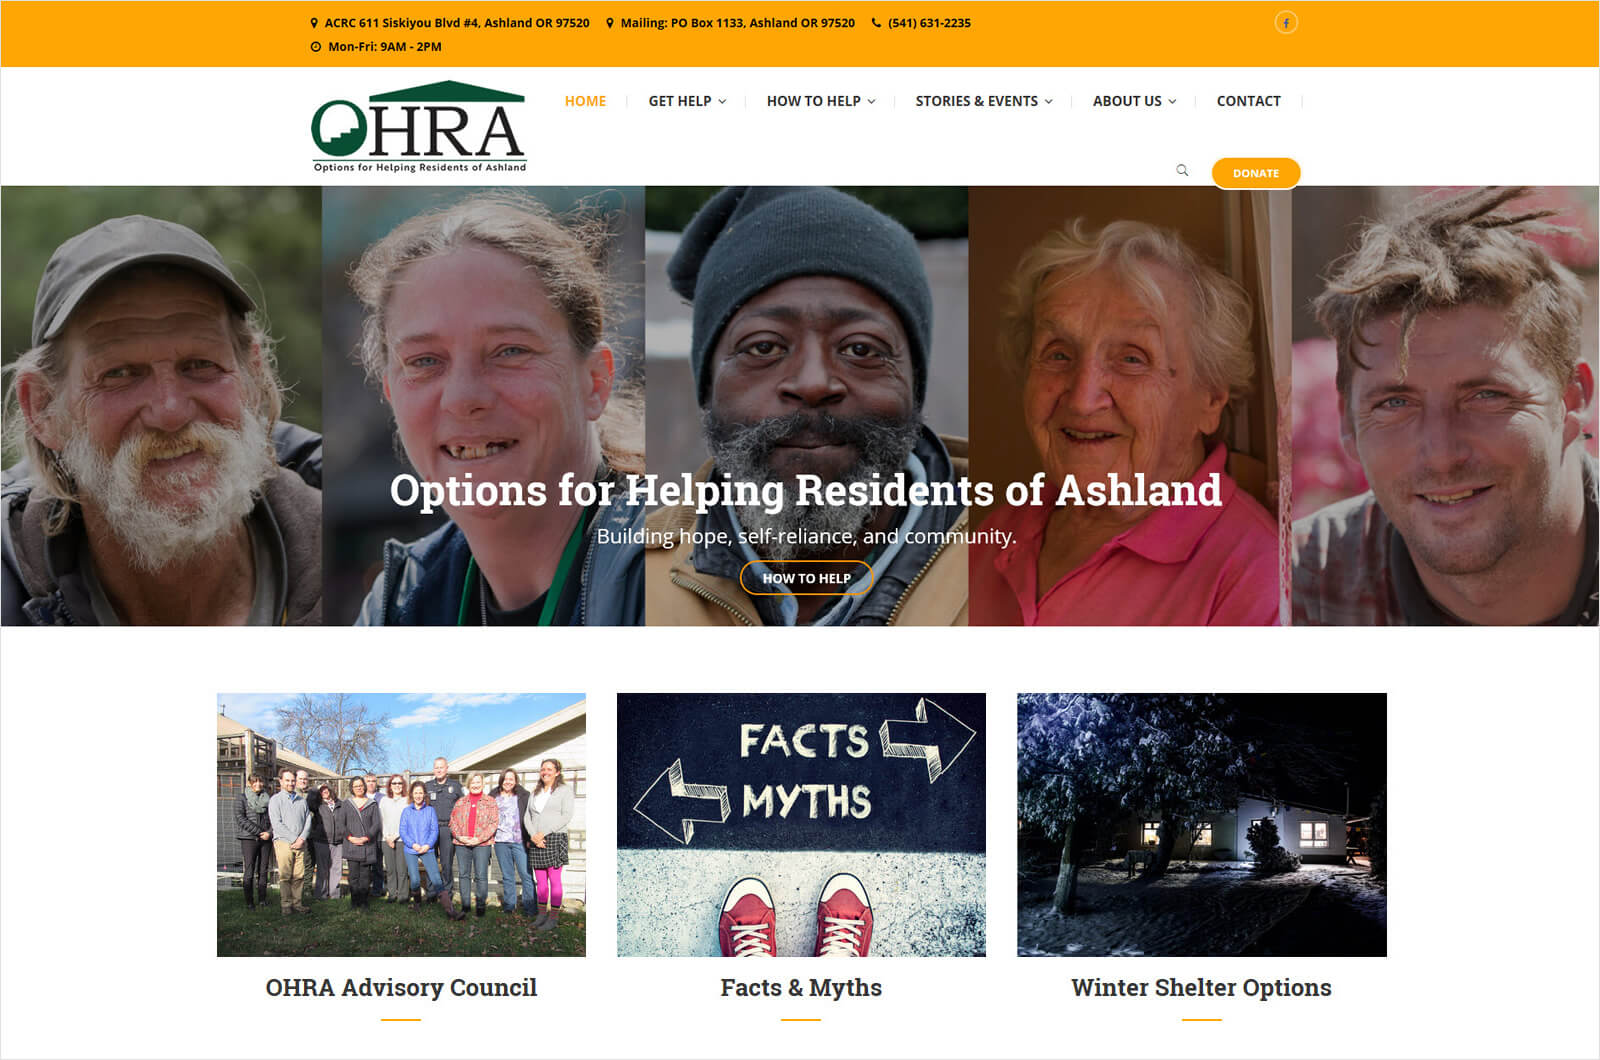 Options for Helping Residents of Ashland